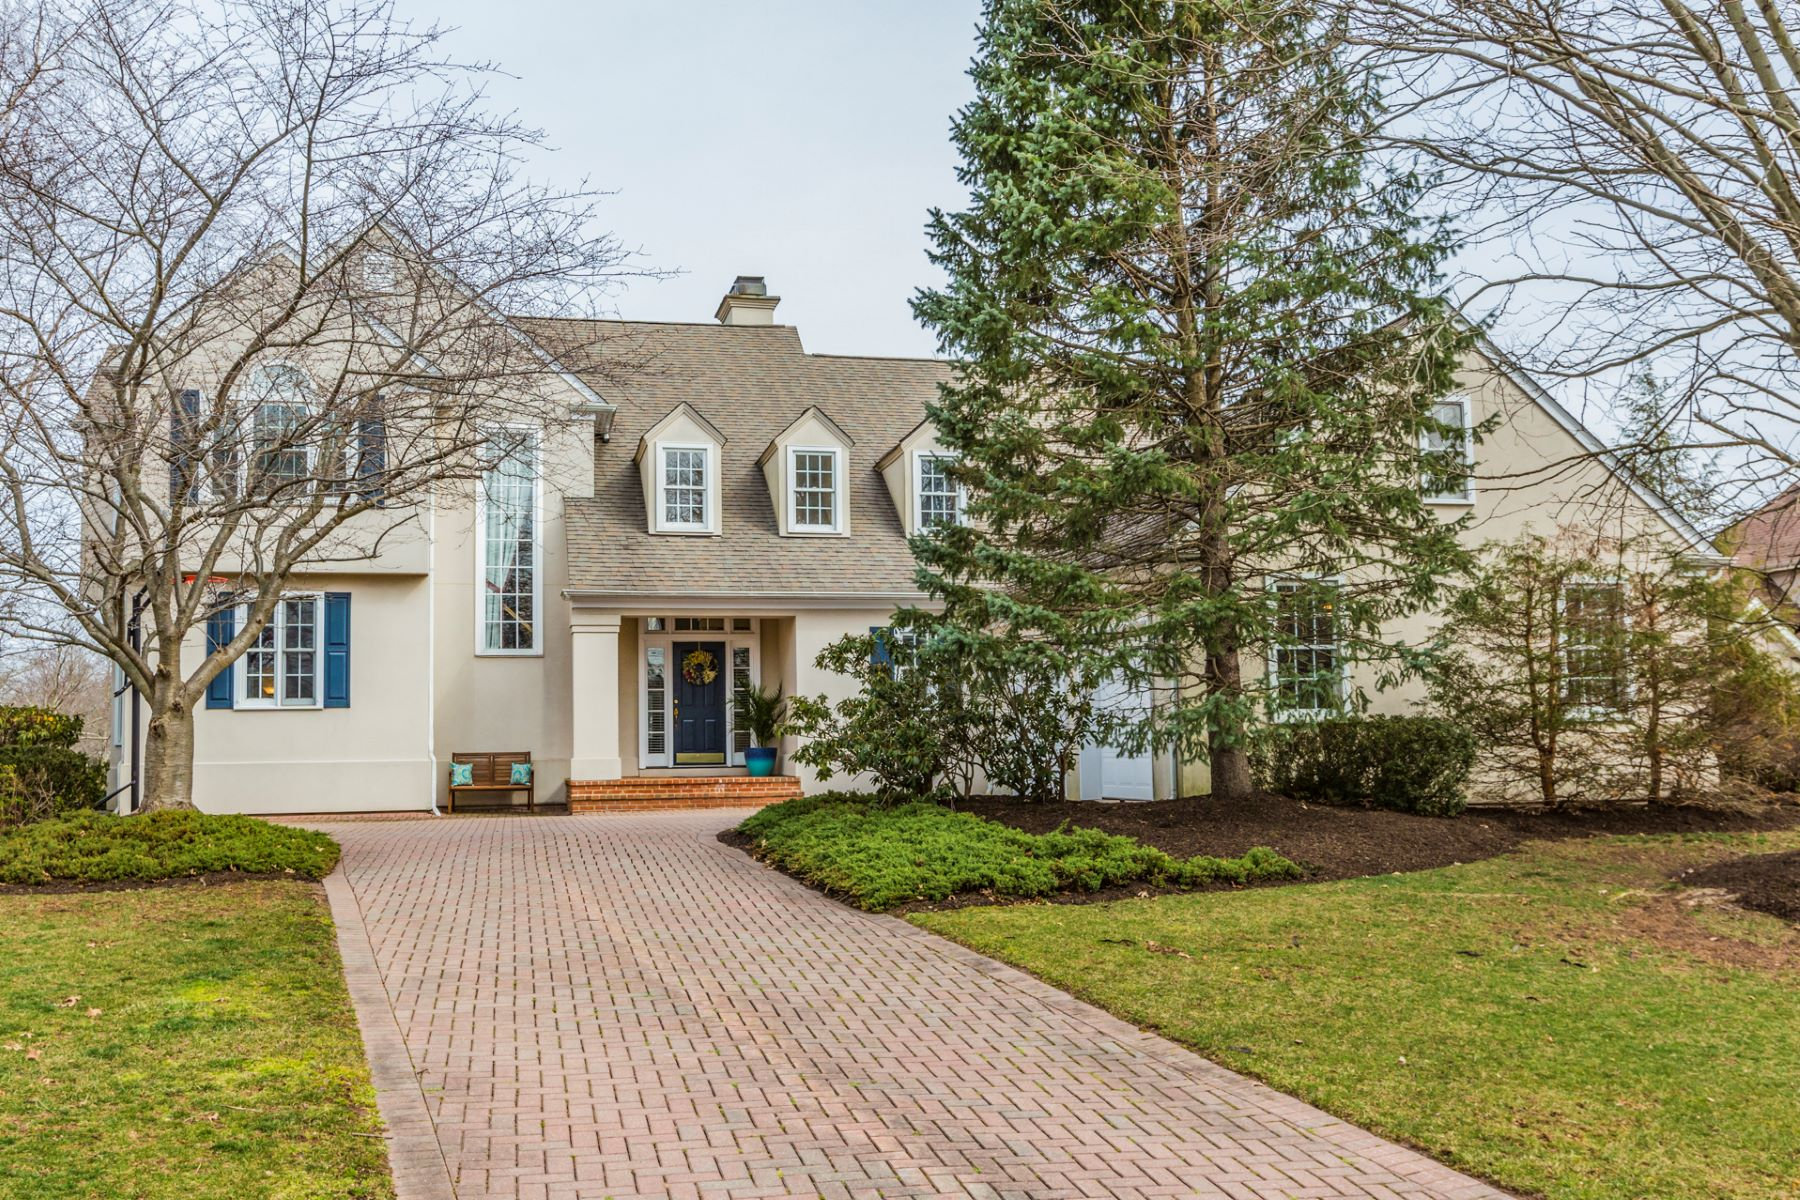 Single Family Home for Sale at Beautiful Architectural Detailing - Montgomery Township 1 La Costa Court Skillman, New Jersey, 08558 United States